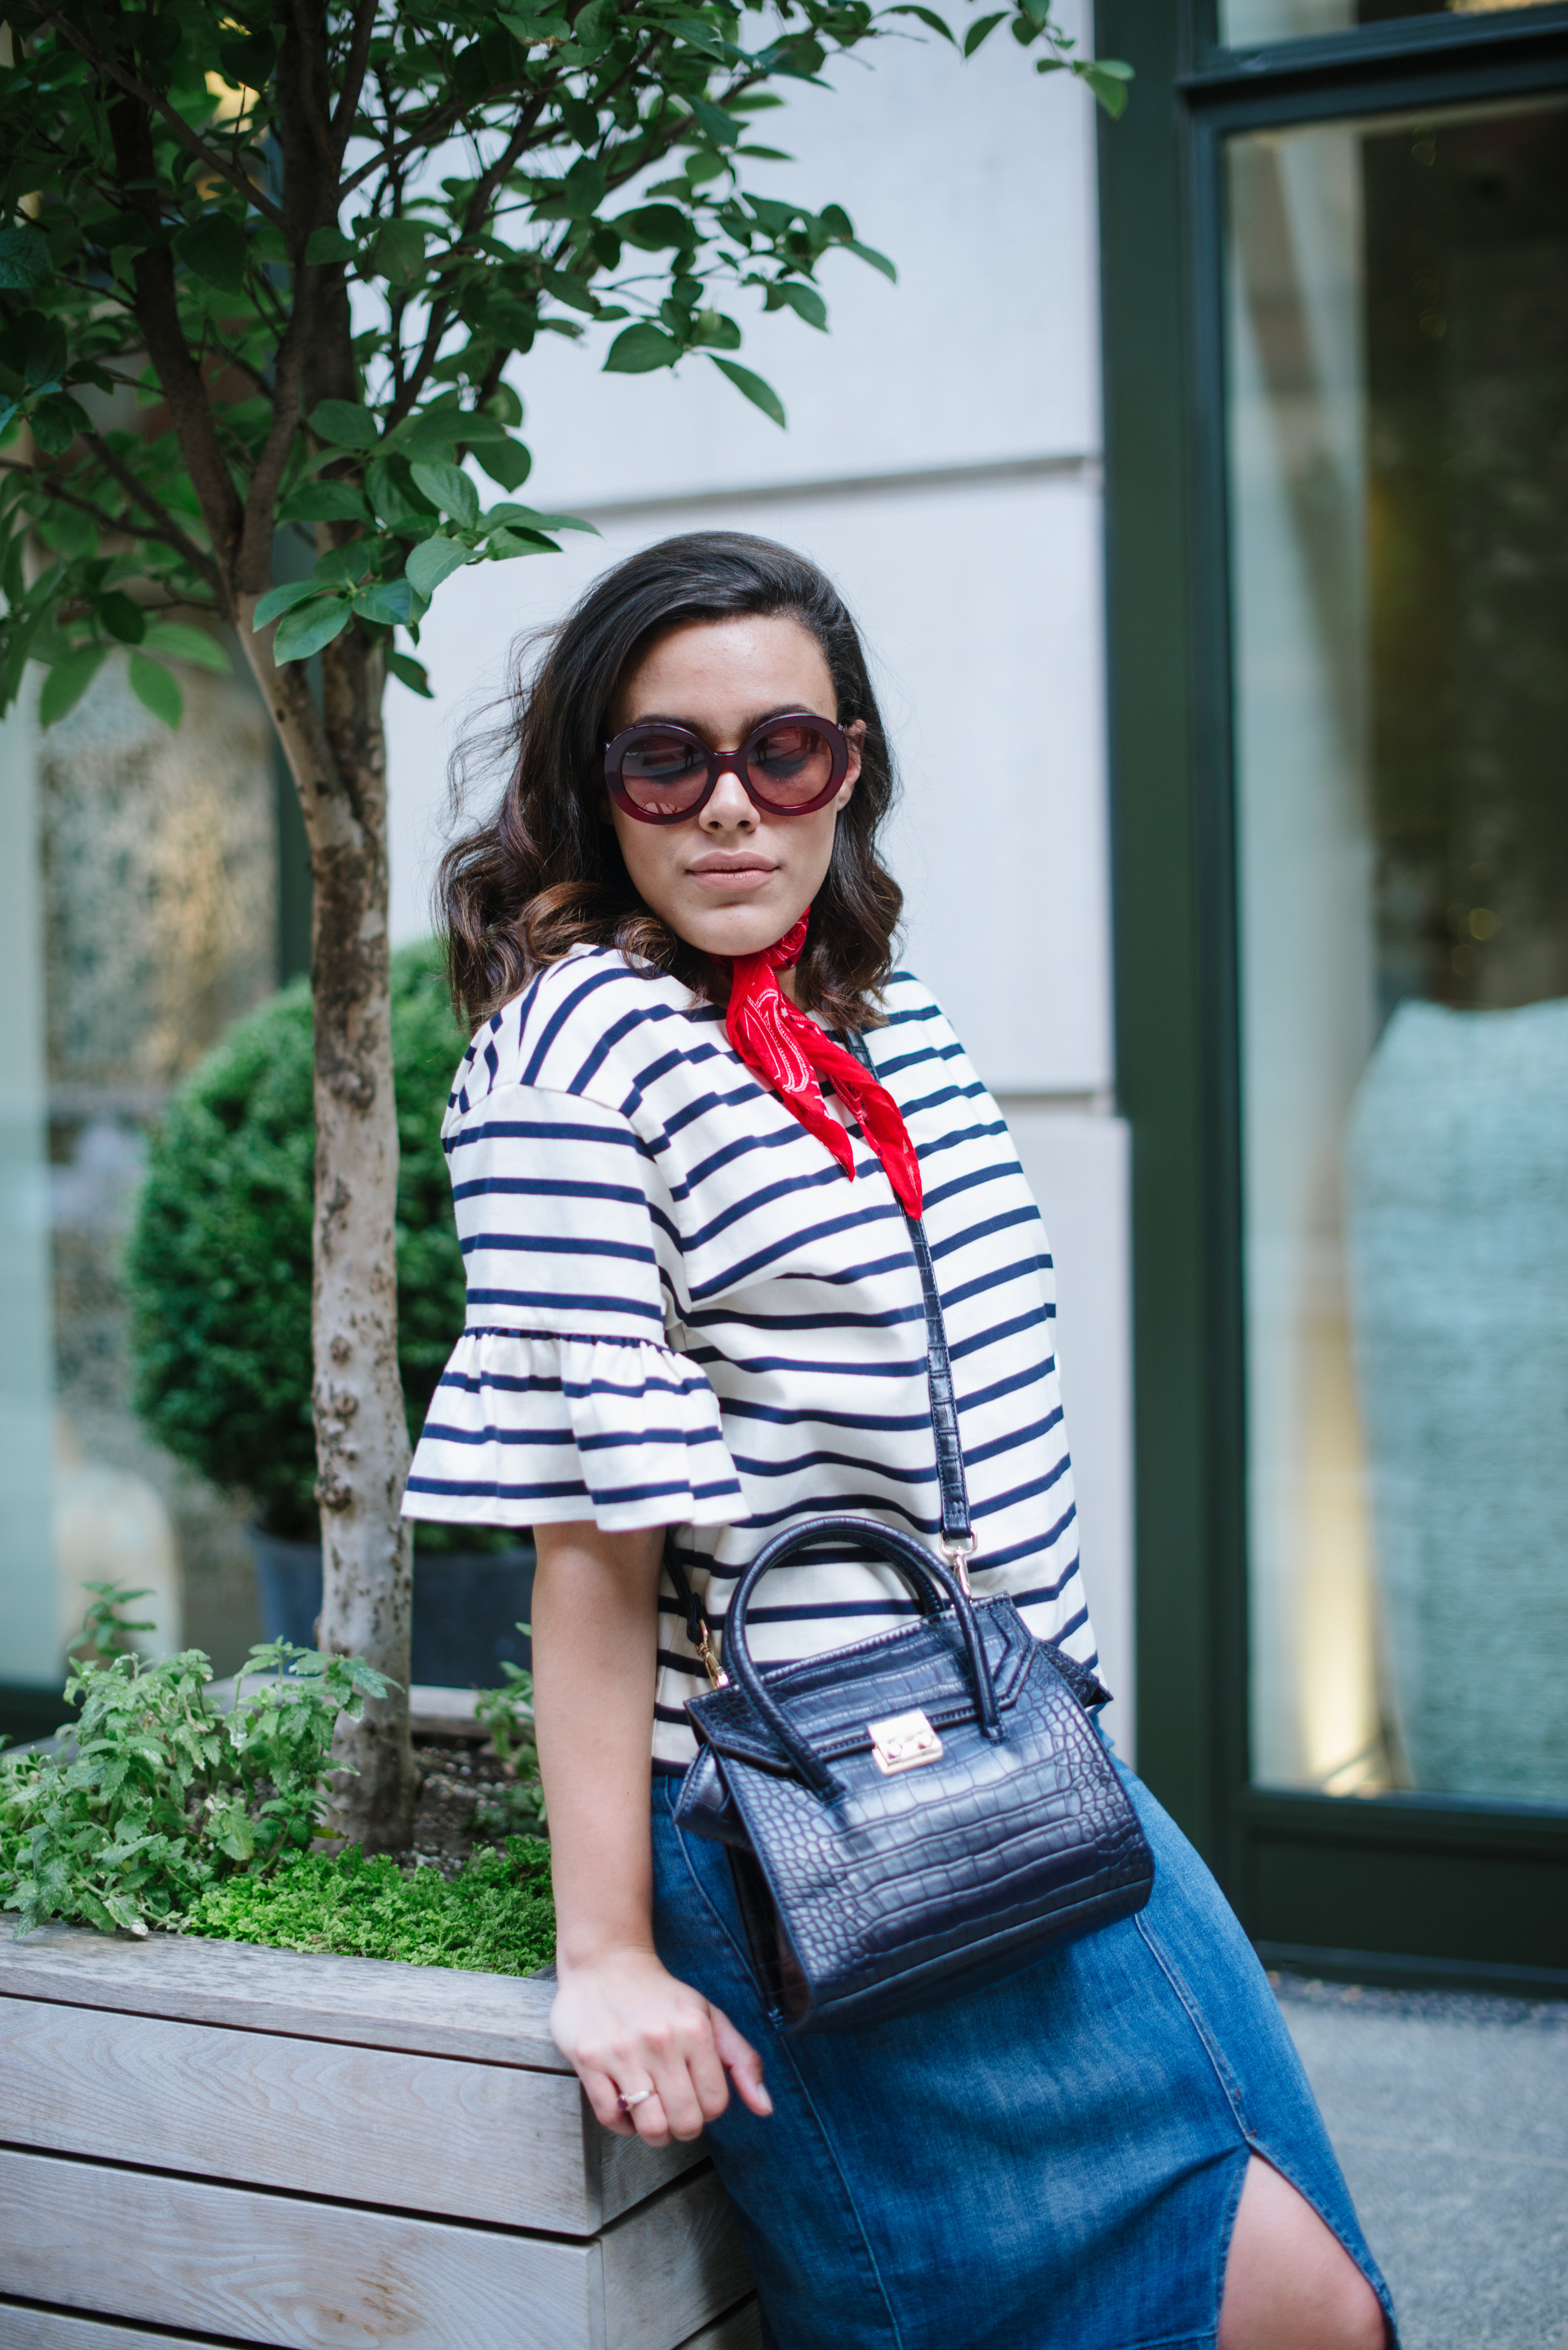 back-to-school-outfit-ideas-2016-what-to-wear-to-school-university-college-latina-new-york-city-fashion-blogger-style-operator-summer-fashion.jpg